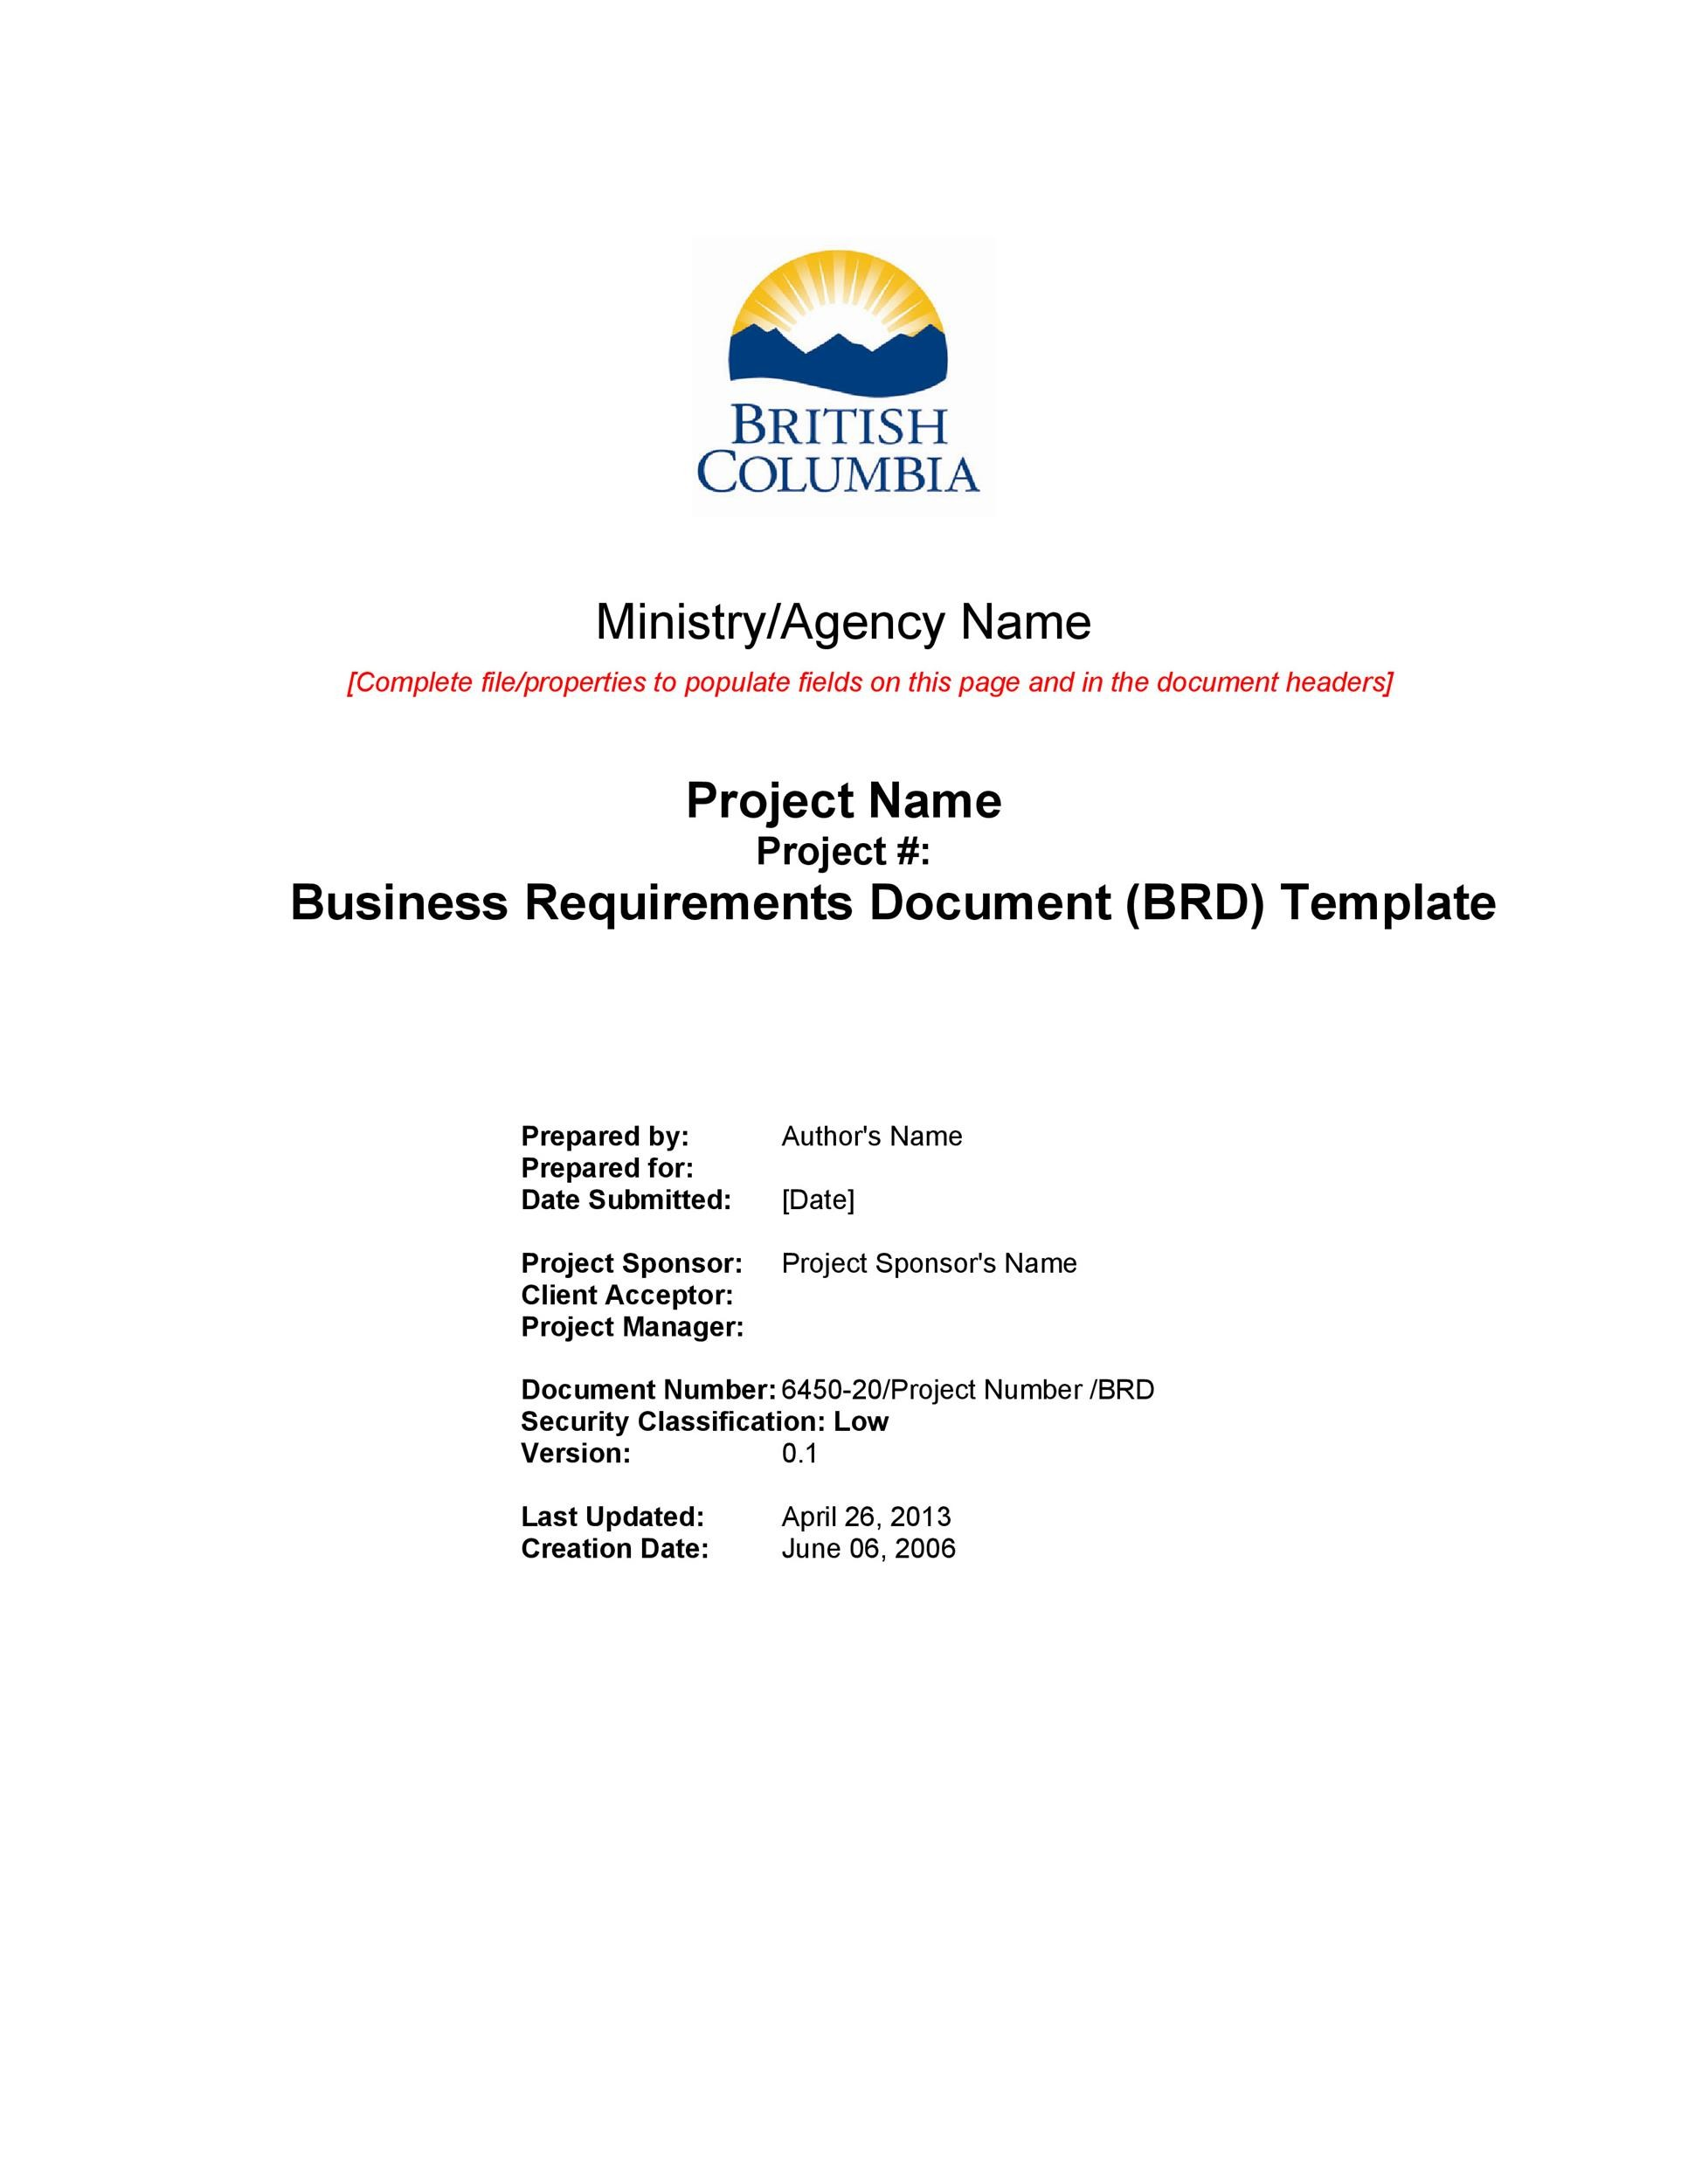 business-requirements-document-template-02.jpg